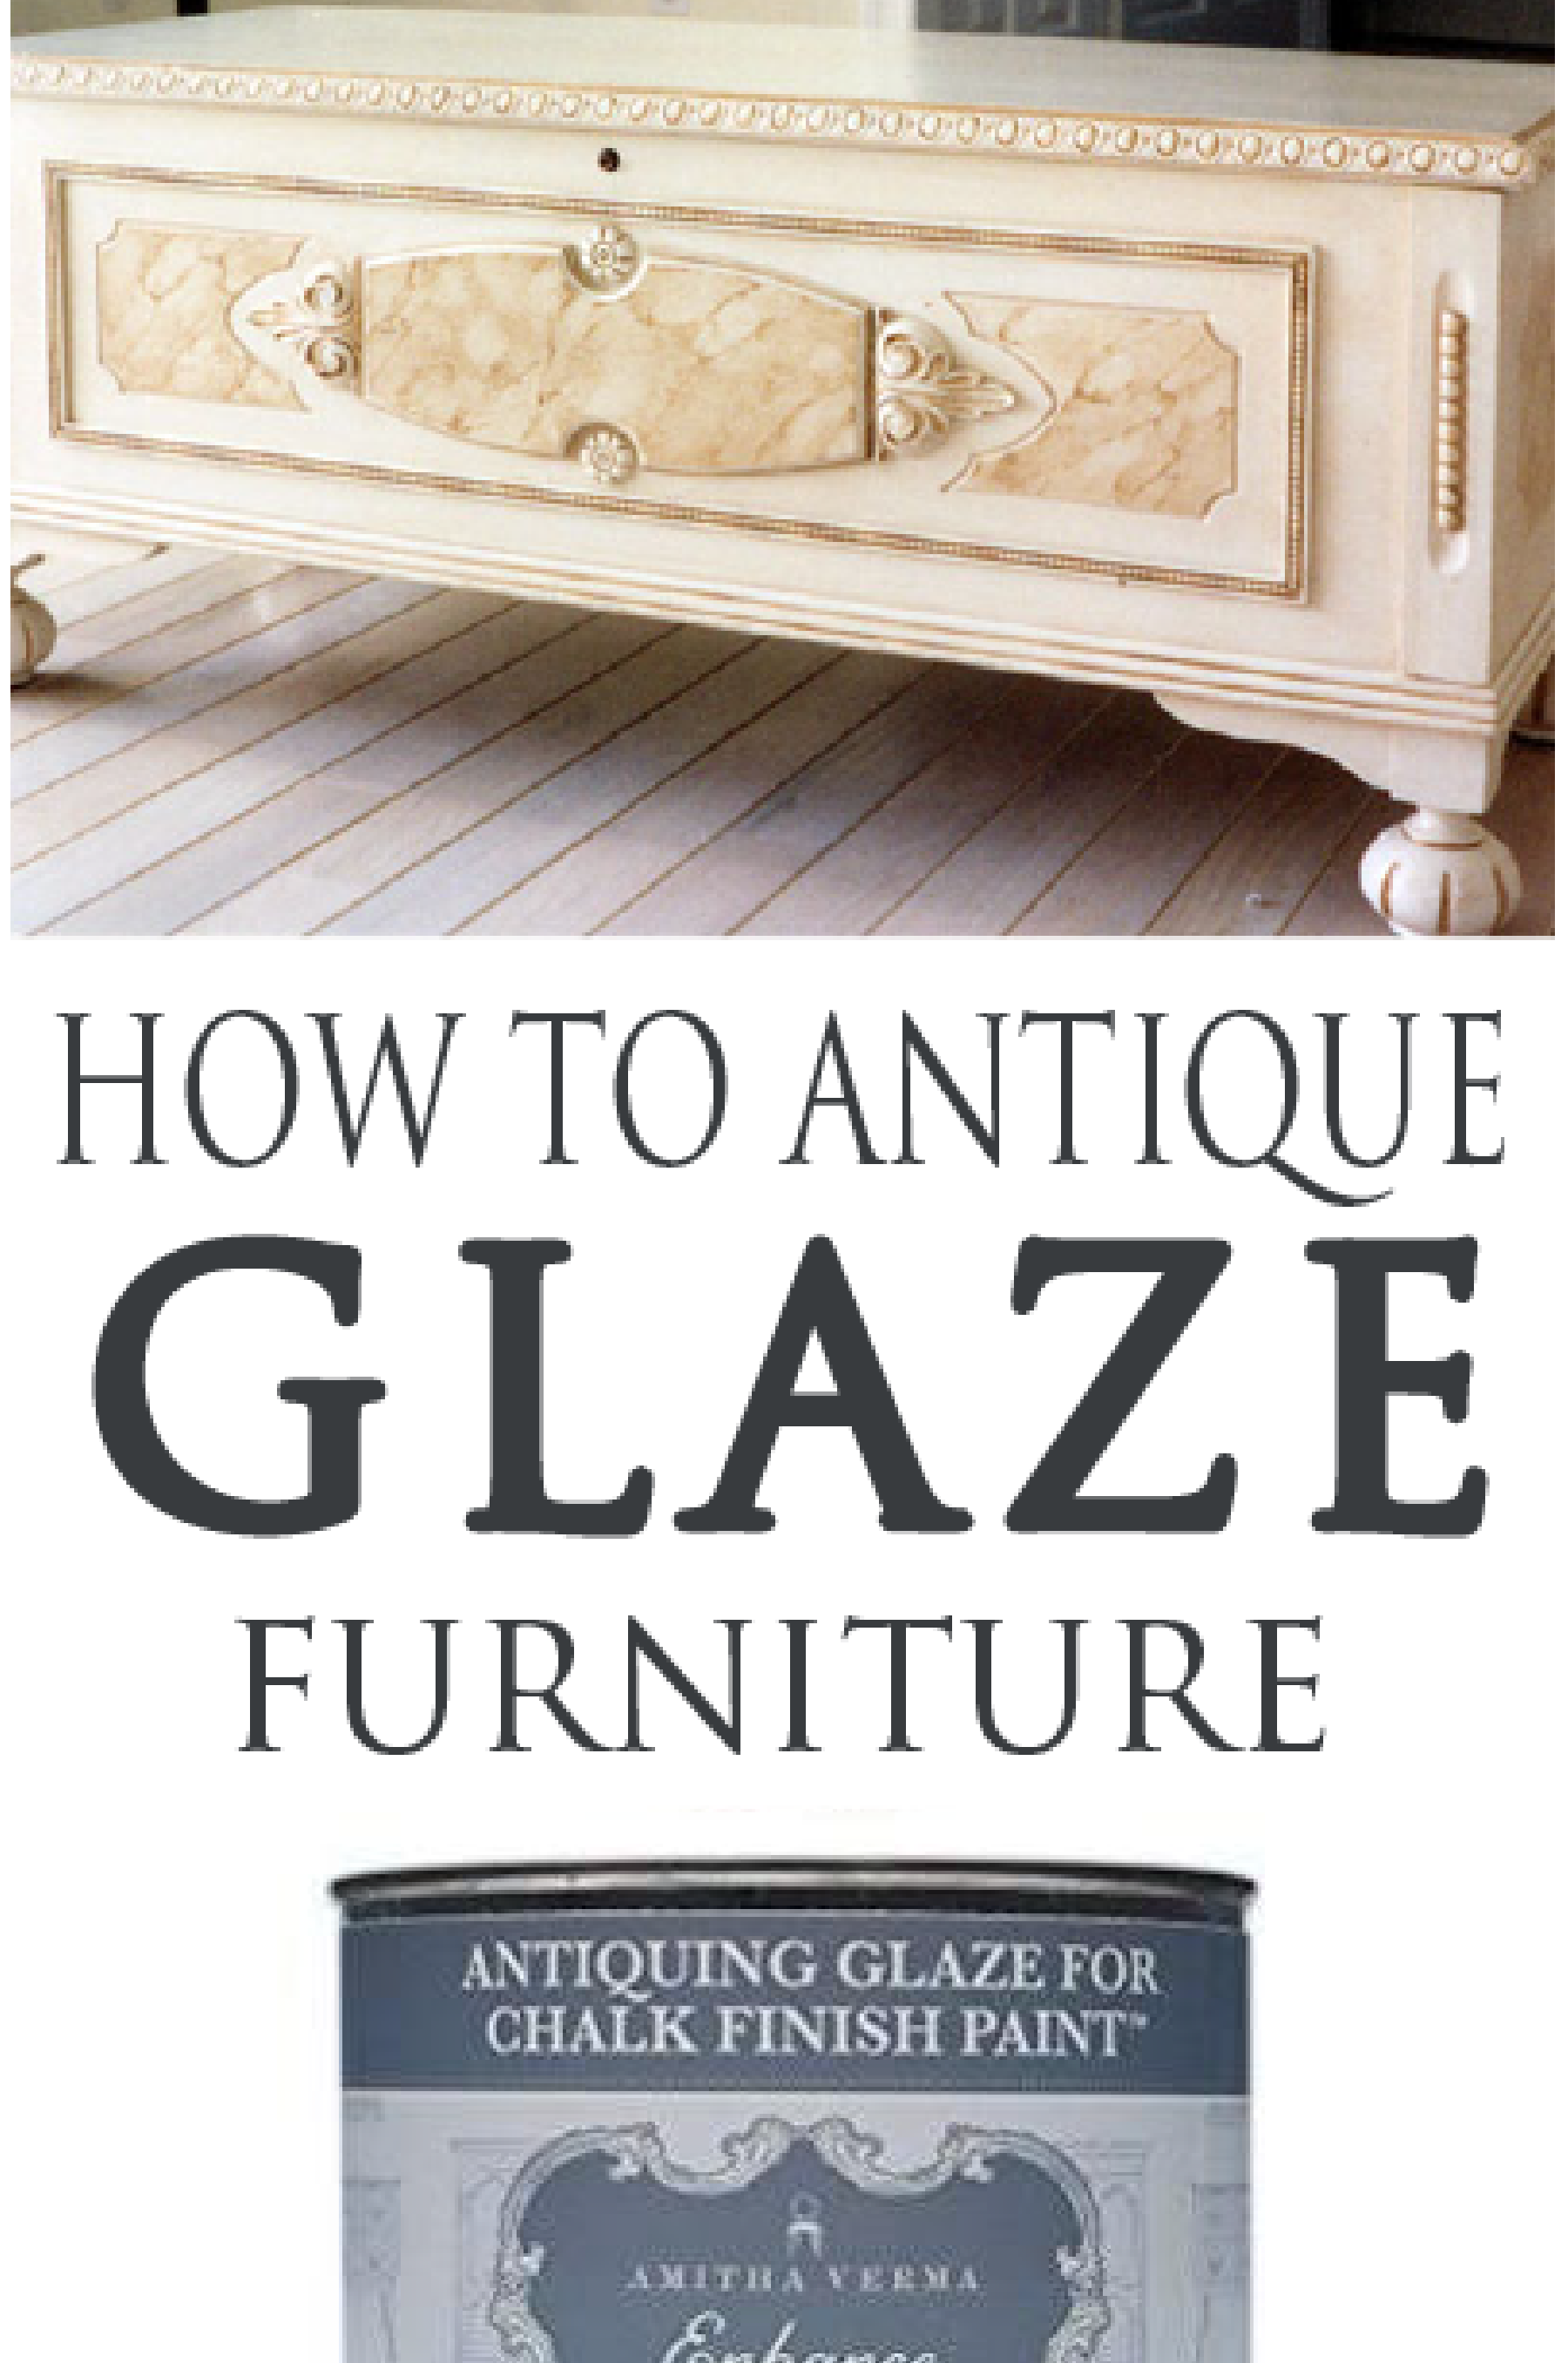 How To Do An Antique Glaze On Painted Furniture Painted Furniture Ideas Antiquing Glaze Distressed Furniture Diy Painting Wooden Furniture